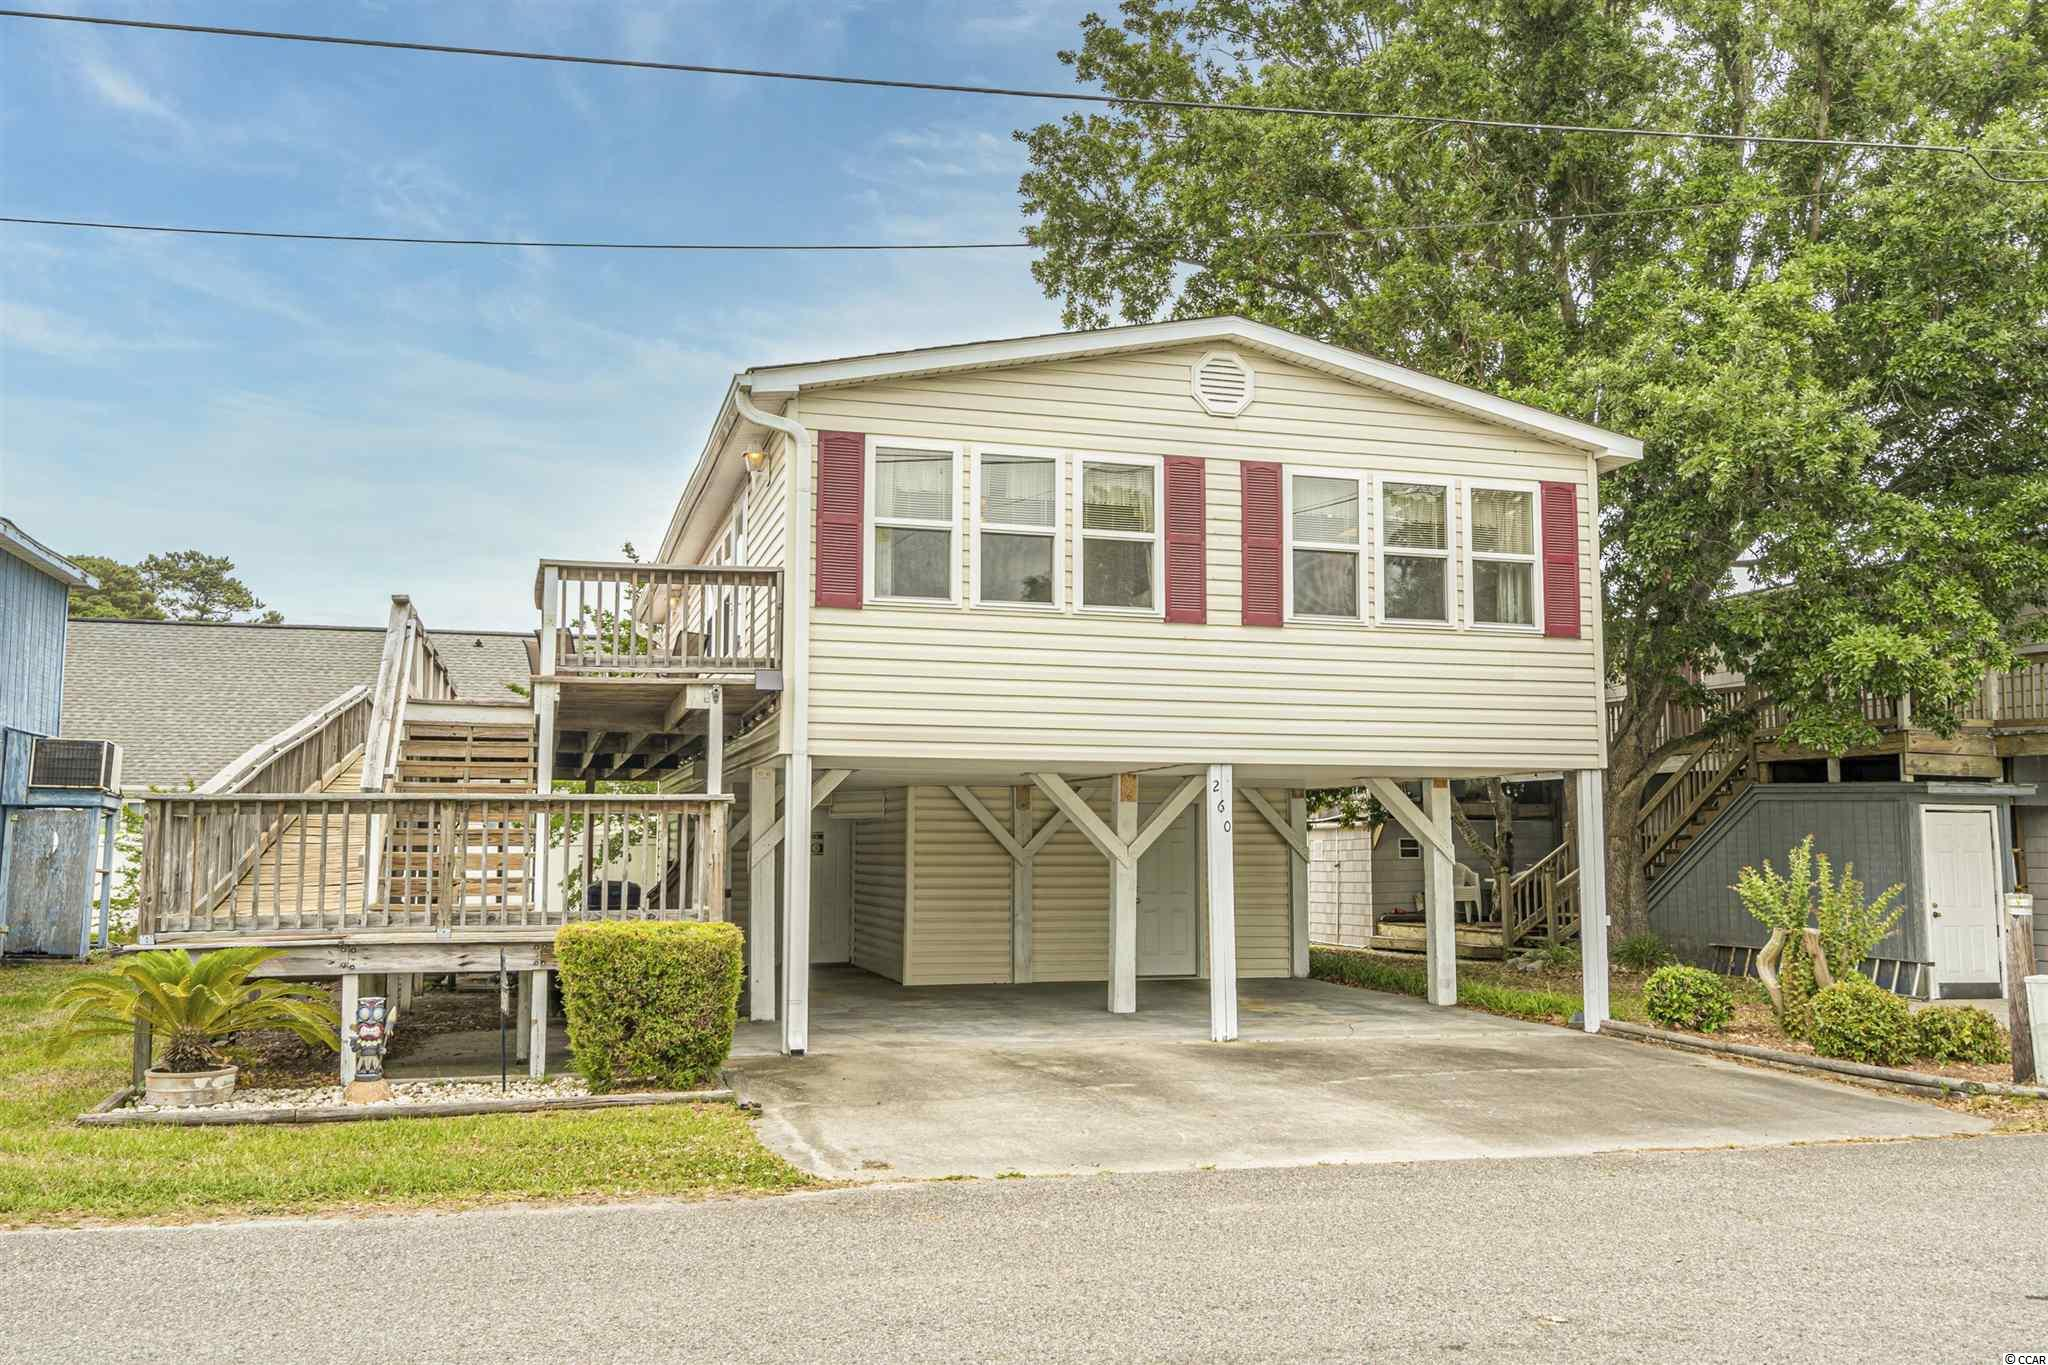 Enjoy easy living in this beautifully maintained beach home located in a gated, oceanfront community in Surfside Beach. As soon as you enter the home you will be pleasantly surprised by the spacious interior that flows effortlessly throughout the main living/dining areas. This open layout is ideal for entertaining guests and/or vacationing comfortably with larger groups. The eat-in kitchen has a breakfast bar with seating for two, quality like-New appliances, and comes complete with all kitchen essentials. The bedrooms are cleverly concealed in the rear of the home allowing for privacy away from the main areas. Updated Laminate-Wood Flooring, Freshly Painted interior, New Roof, and Like-New HVAC and Water Heater. Soak up the sun or relax with a good book on the deck- Deck is equipped with an access ramp to the 2nd story. The underneath of the home has a large storage unit for all the extras and room to park 4 vehicles comfortably. Established Turn-Key weekly rental home, offered fully furnished and tastefully decorated. Walking distance to the beach in the Oceanside Village community. Homeowners and their guests have access to resort-style amenities including indoor/outdoor pools, kiddie splash zone, tennis/basketball courts, dog park, playground, fitness center and private beach access with parking and an Oceanfront Restaurant. Schedule your showing today.